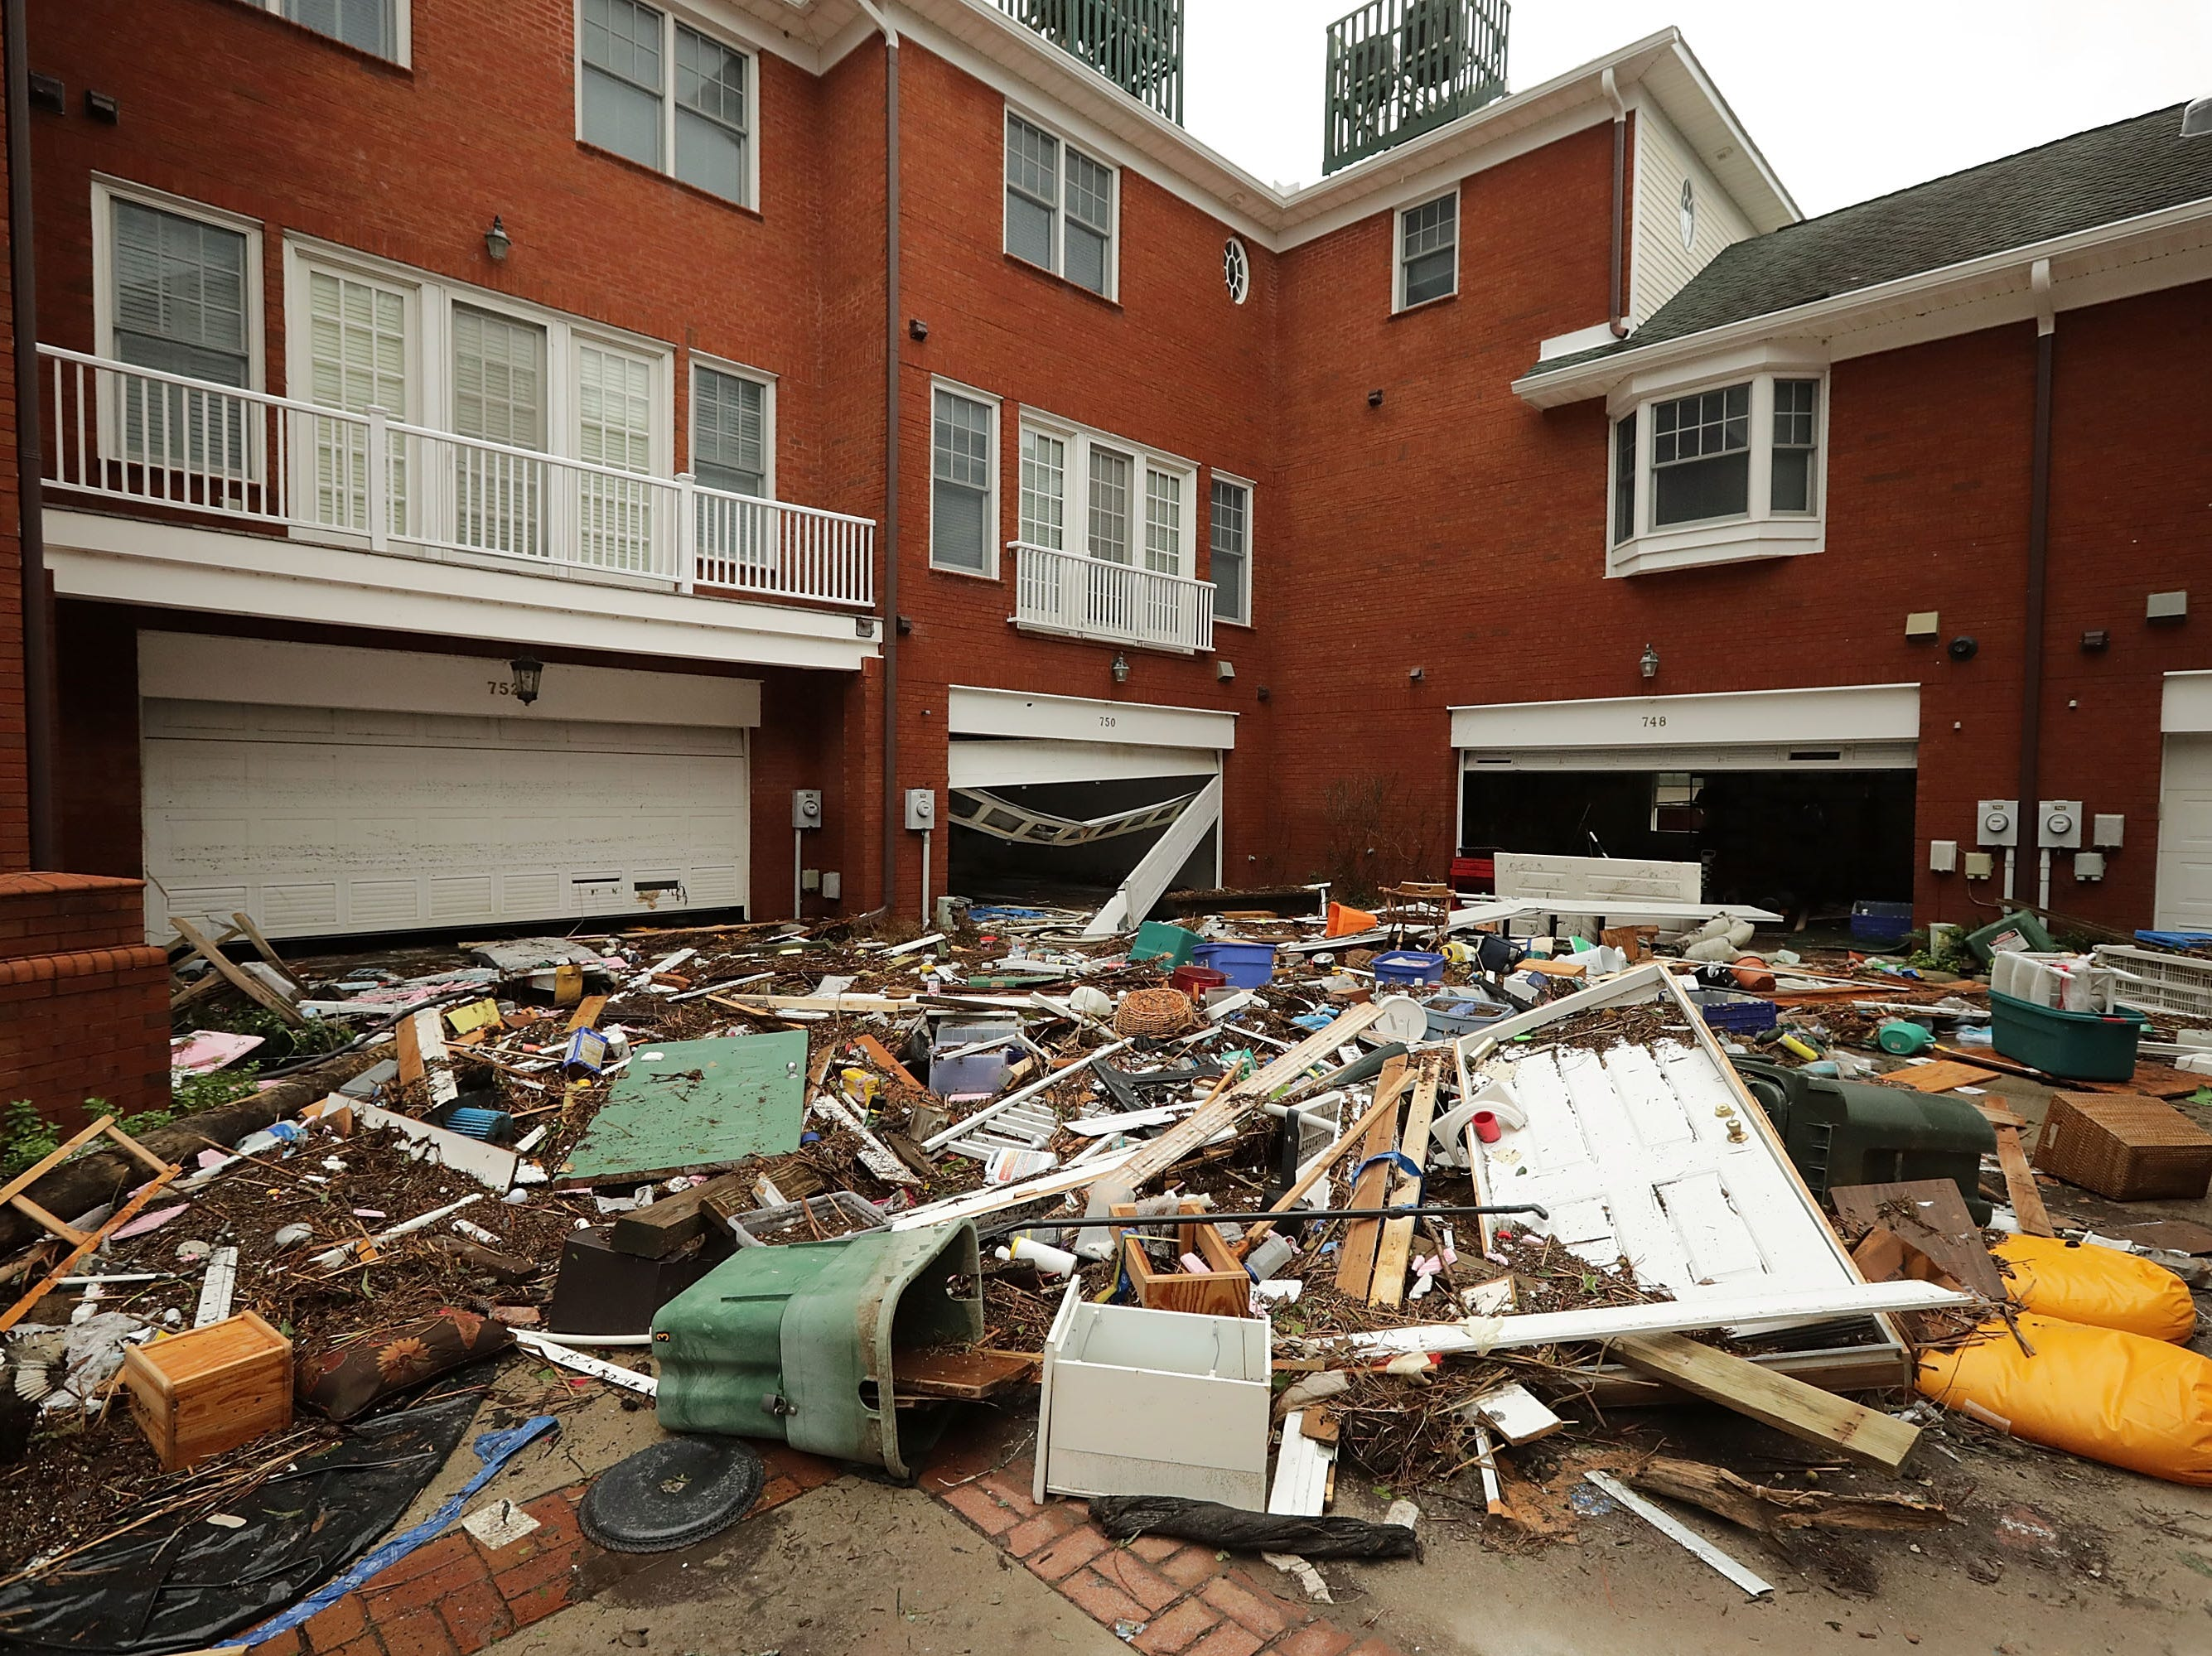 The courtyard at Queen's Point condos is filled with residents' belongings after the storm surge from Hurricane Florence tore open the lower floors with a four-foot high storm surge Sept. 15, 2018 in New Bern, N.C. Hurricane Florence made landfall in North Carolina as a Category 1 storm Friday and at least five deaths have been attributed to the storm, which continues to produce heavy rain and strong winds extending out nearly 200 miles.